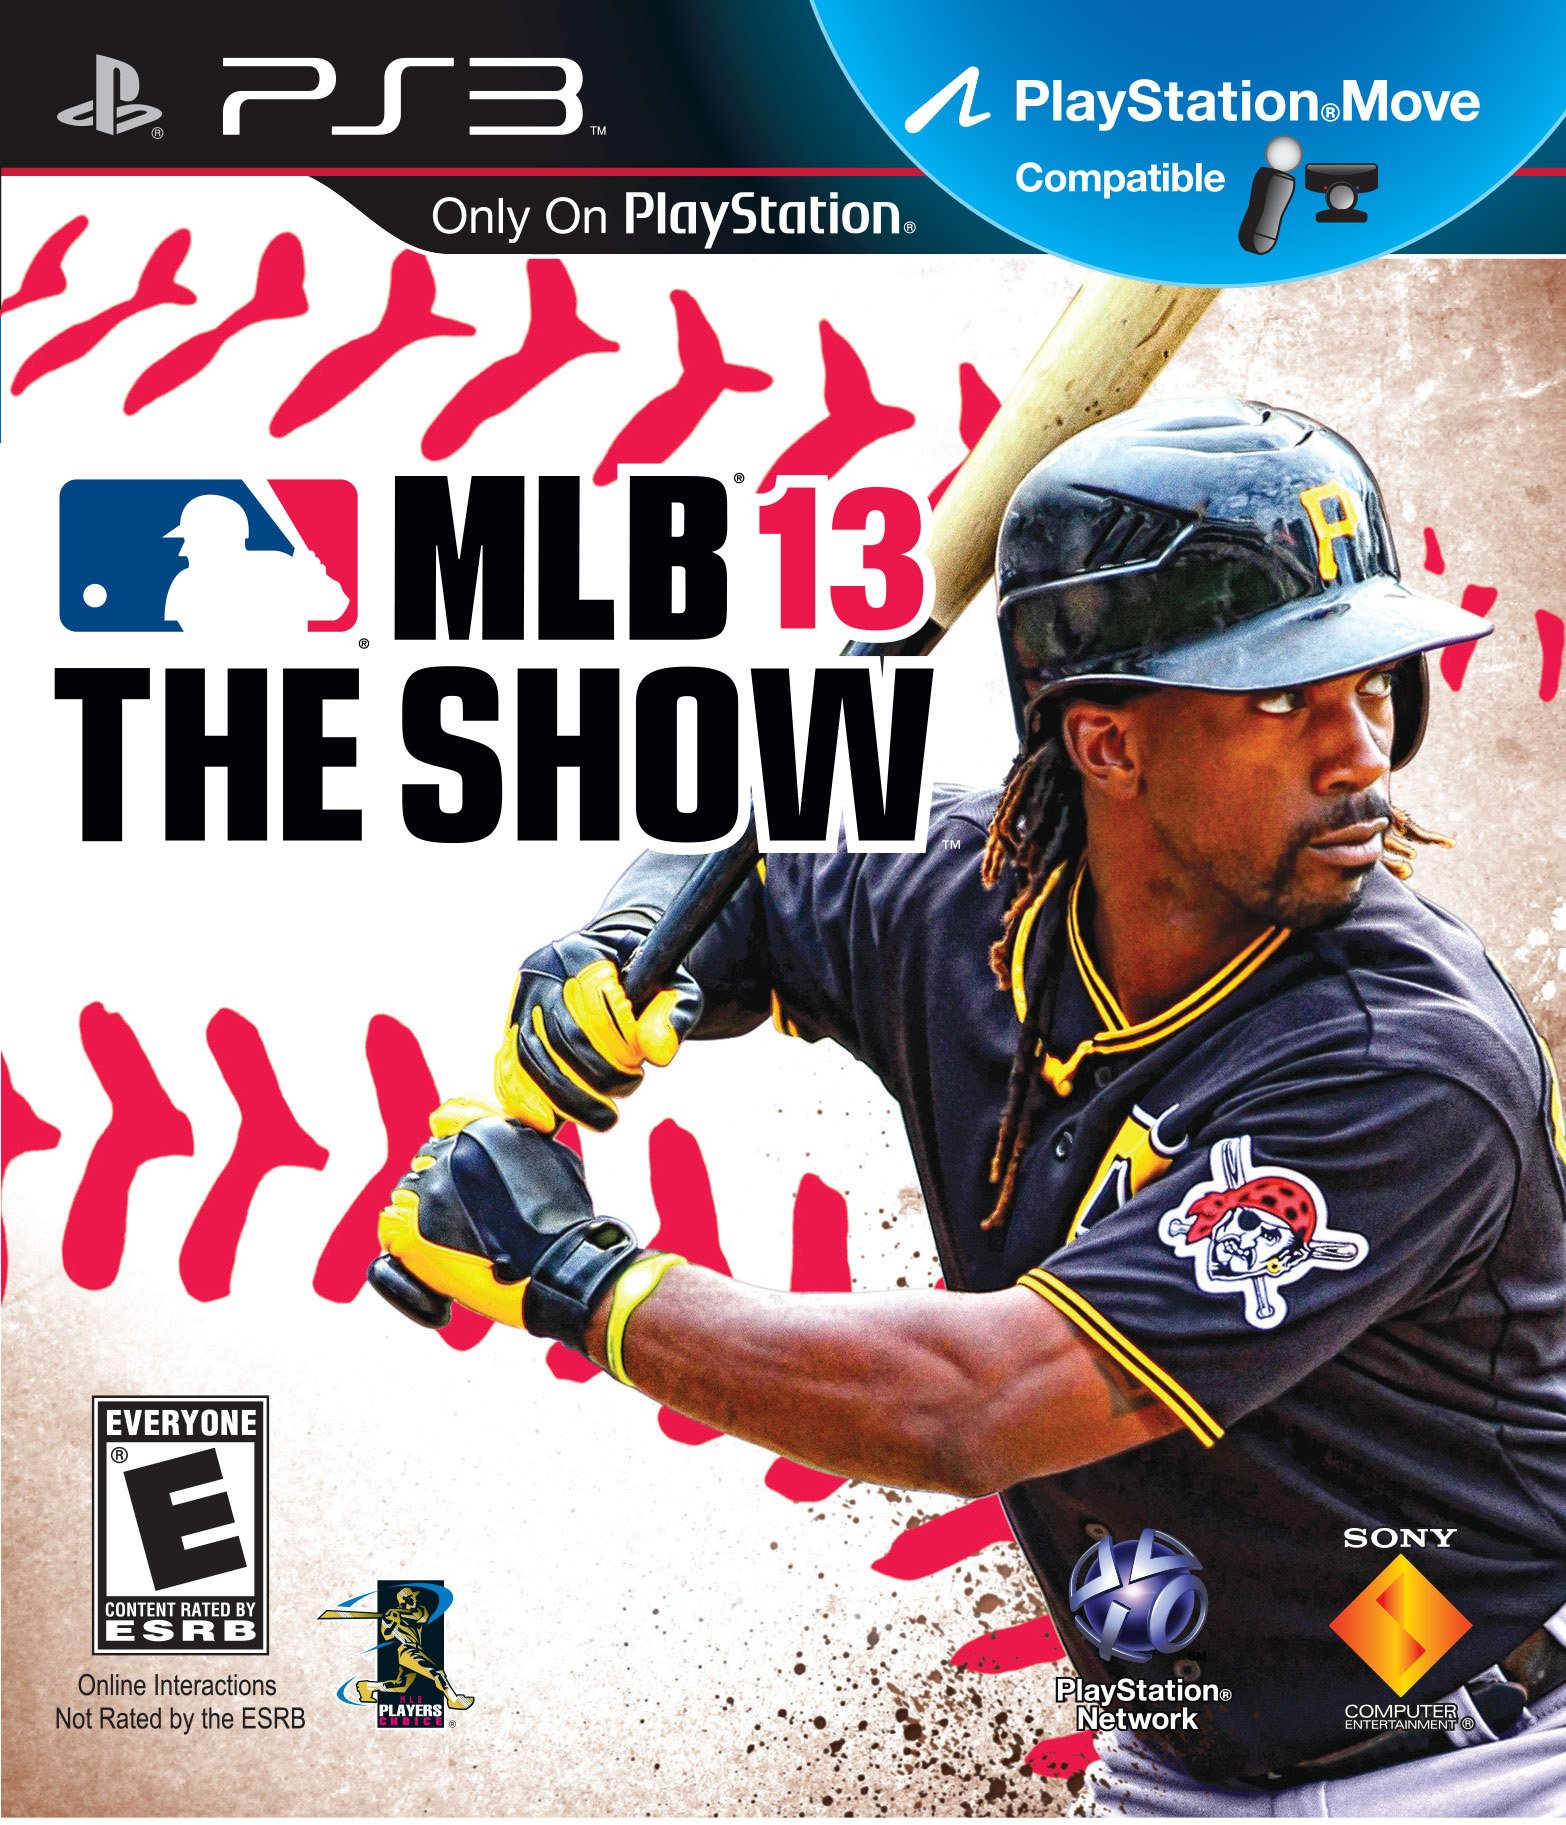 MLB 13 The Show - Playstation 3 by Sony (Image #1)